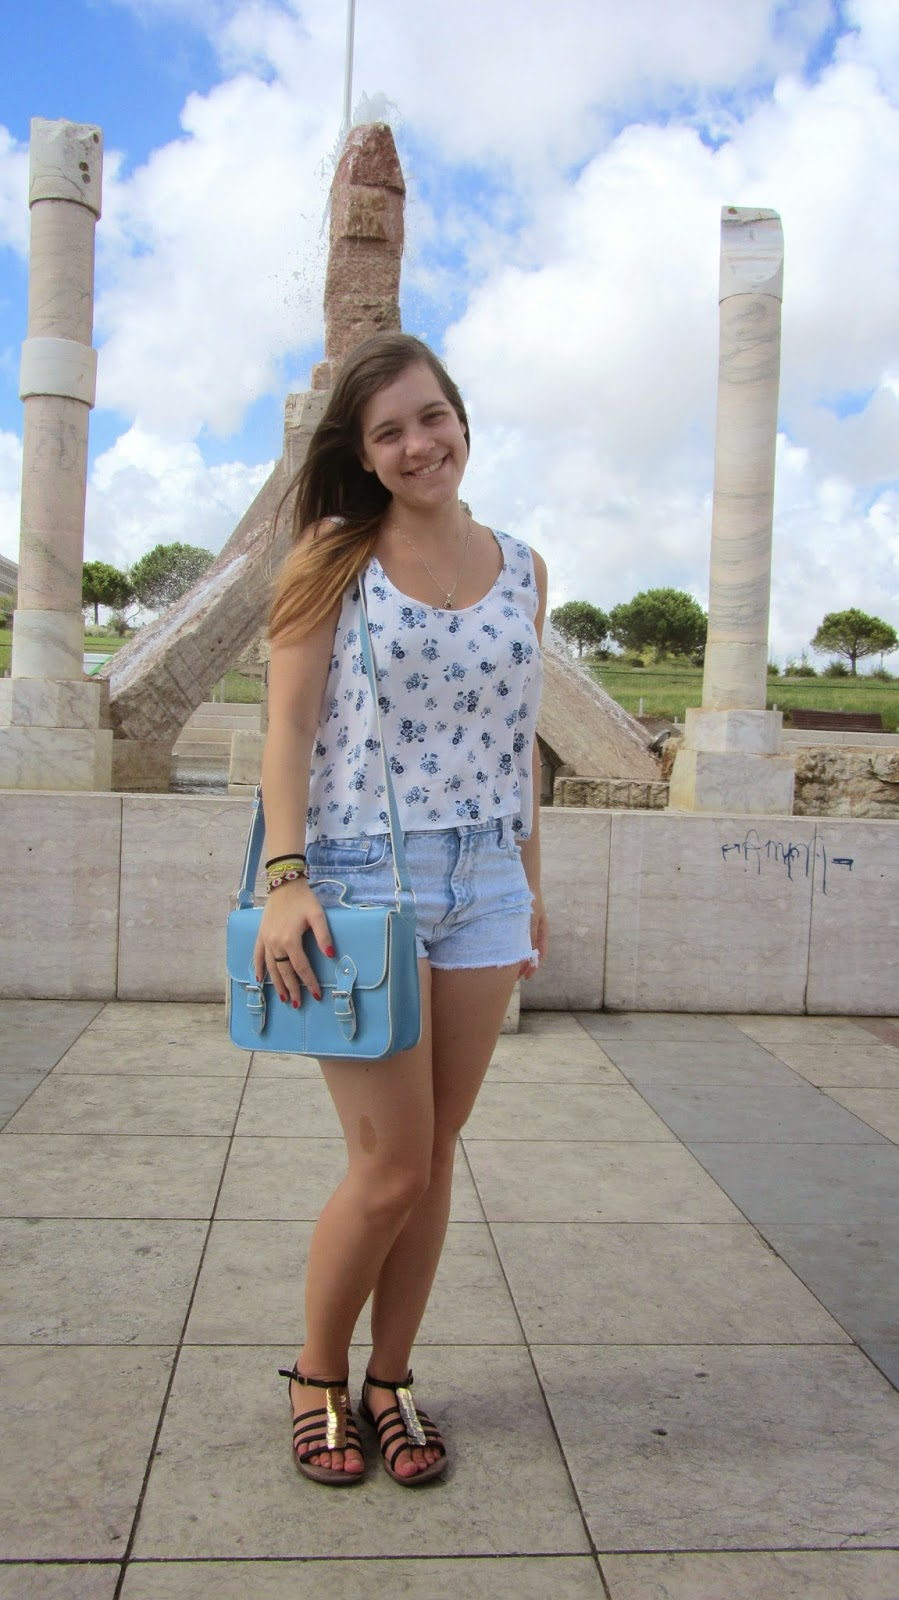 Clothes & Dreams: OOTD x3: Boa Lisboa: OOTD #1 full outfit